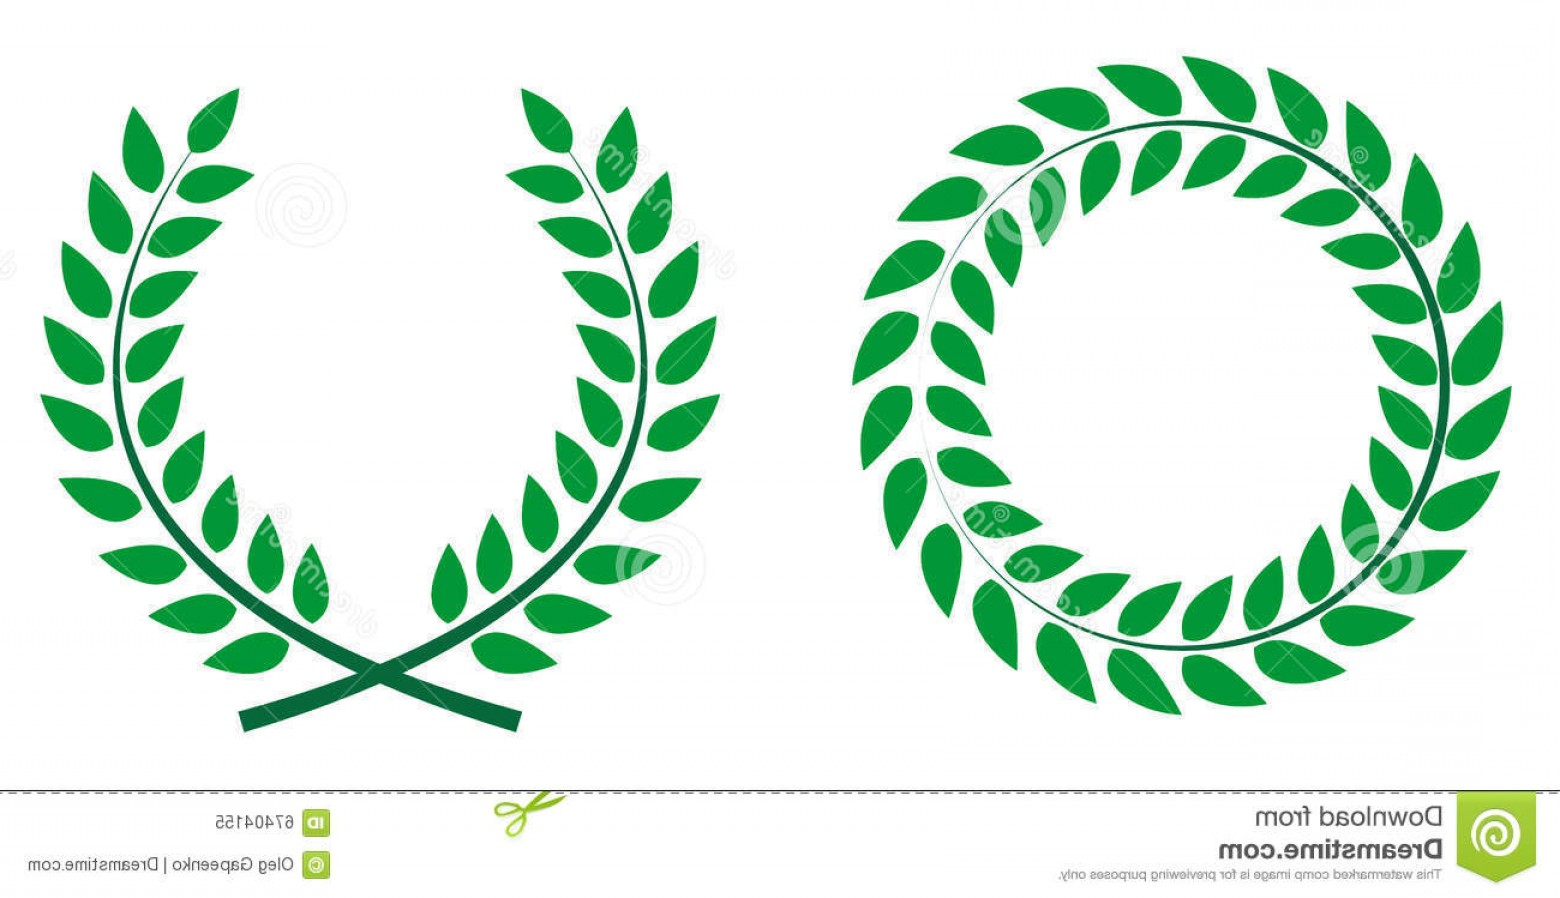 Award Vector Leaves: Royalty Free Stock Images Victory Wreath Image